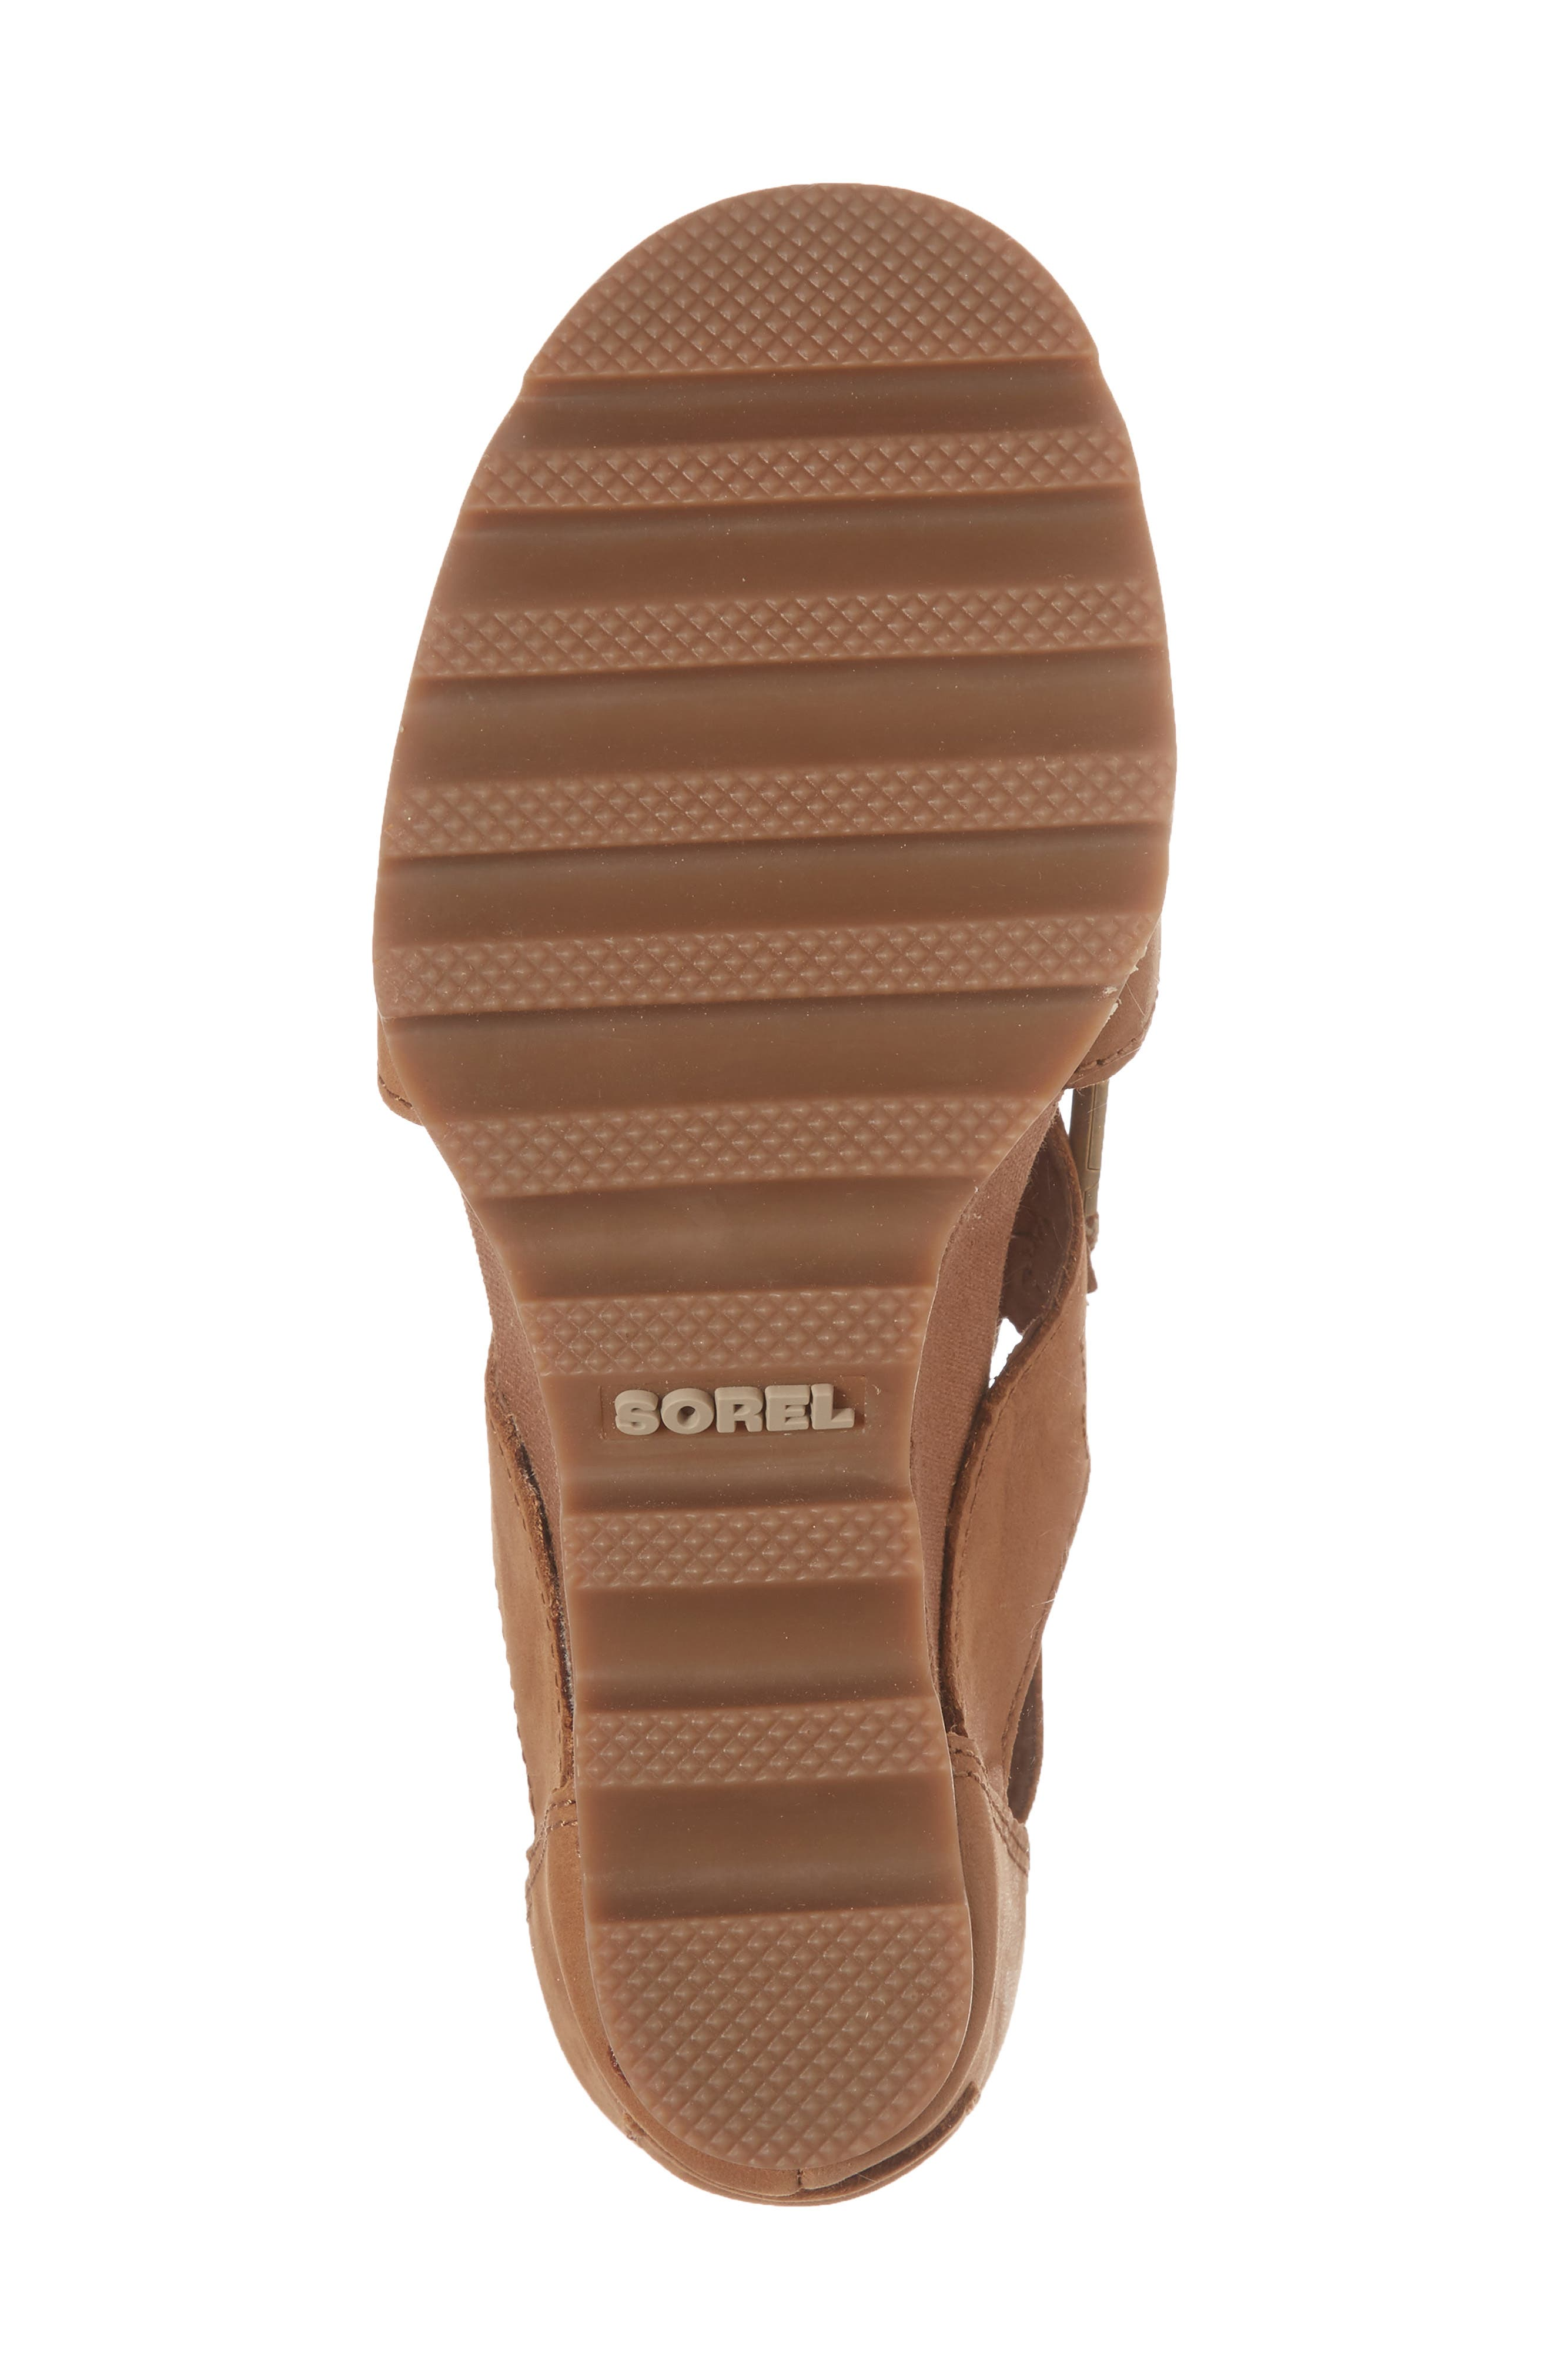 'Joanie' Cage Sandal,                             Alternate thumbnail 6, color,                             Camel Brown